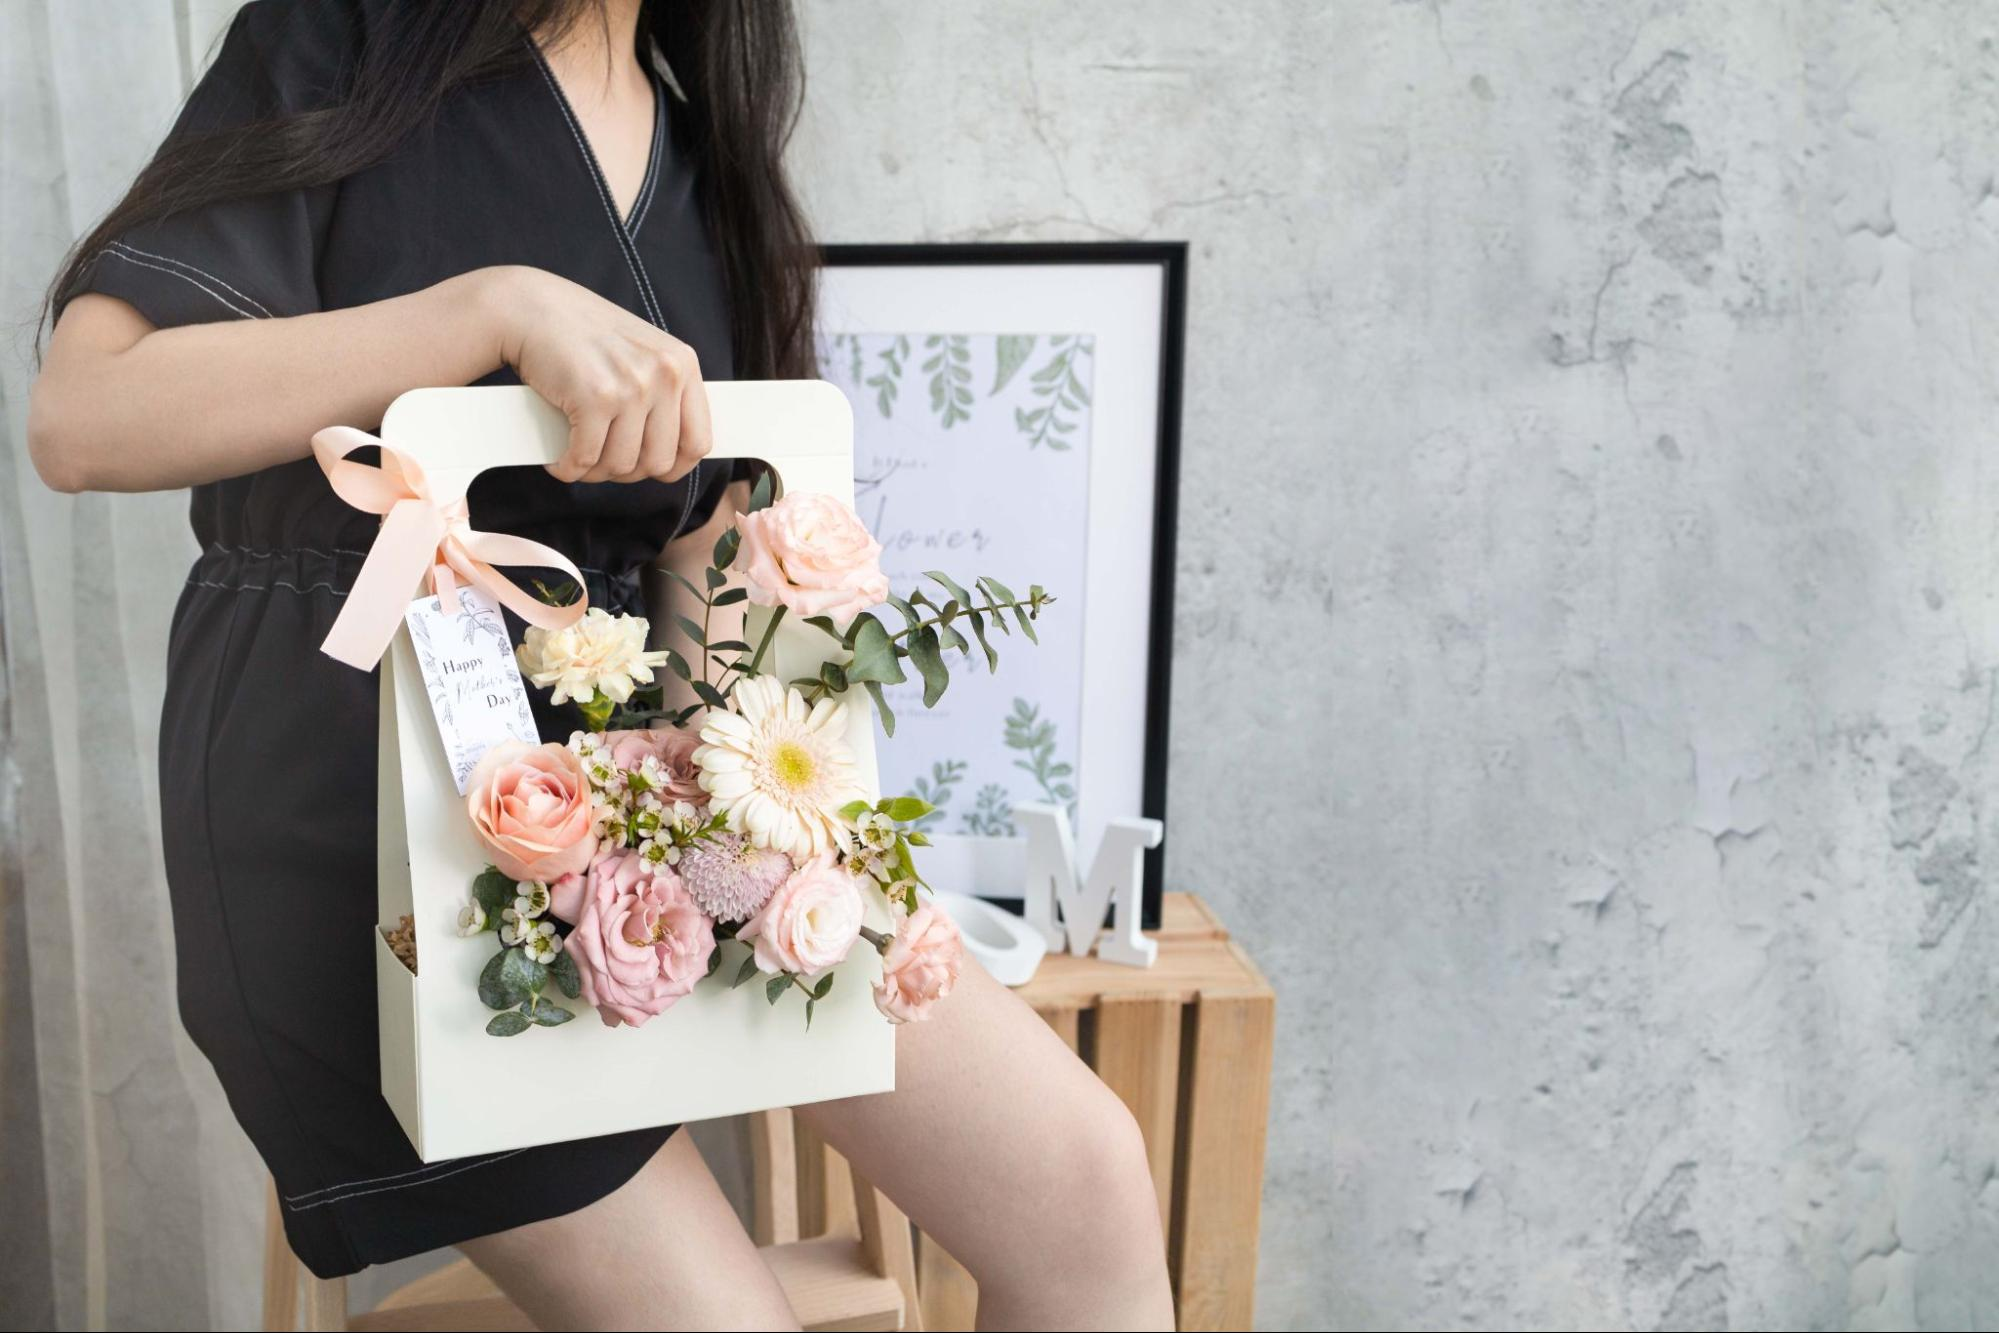 A woman holds a stunning box filled with flowers online Singapore.